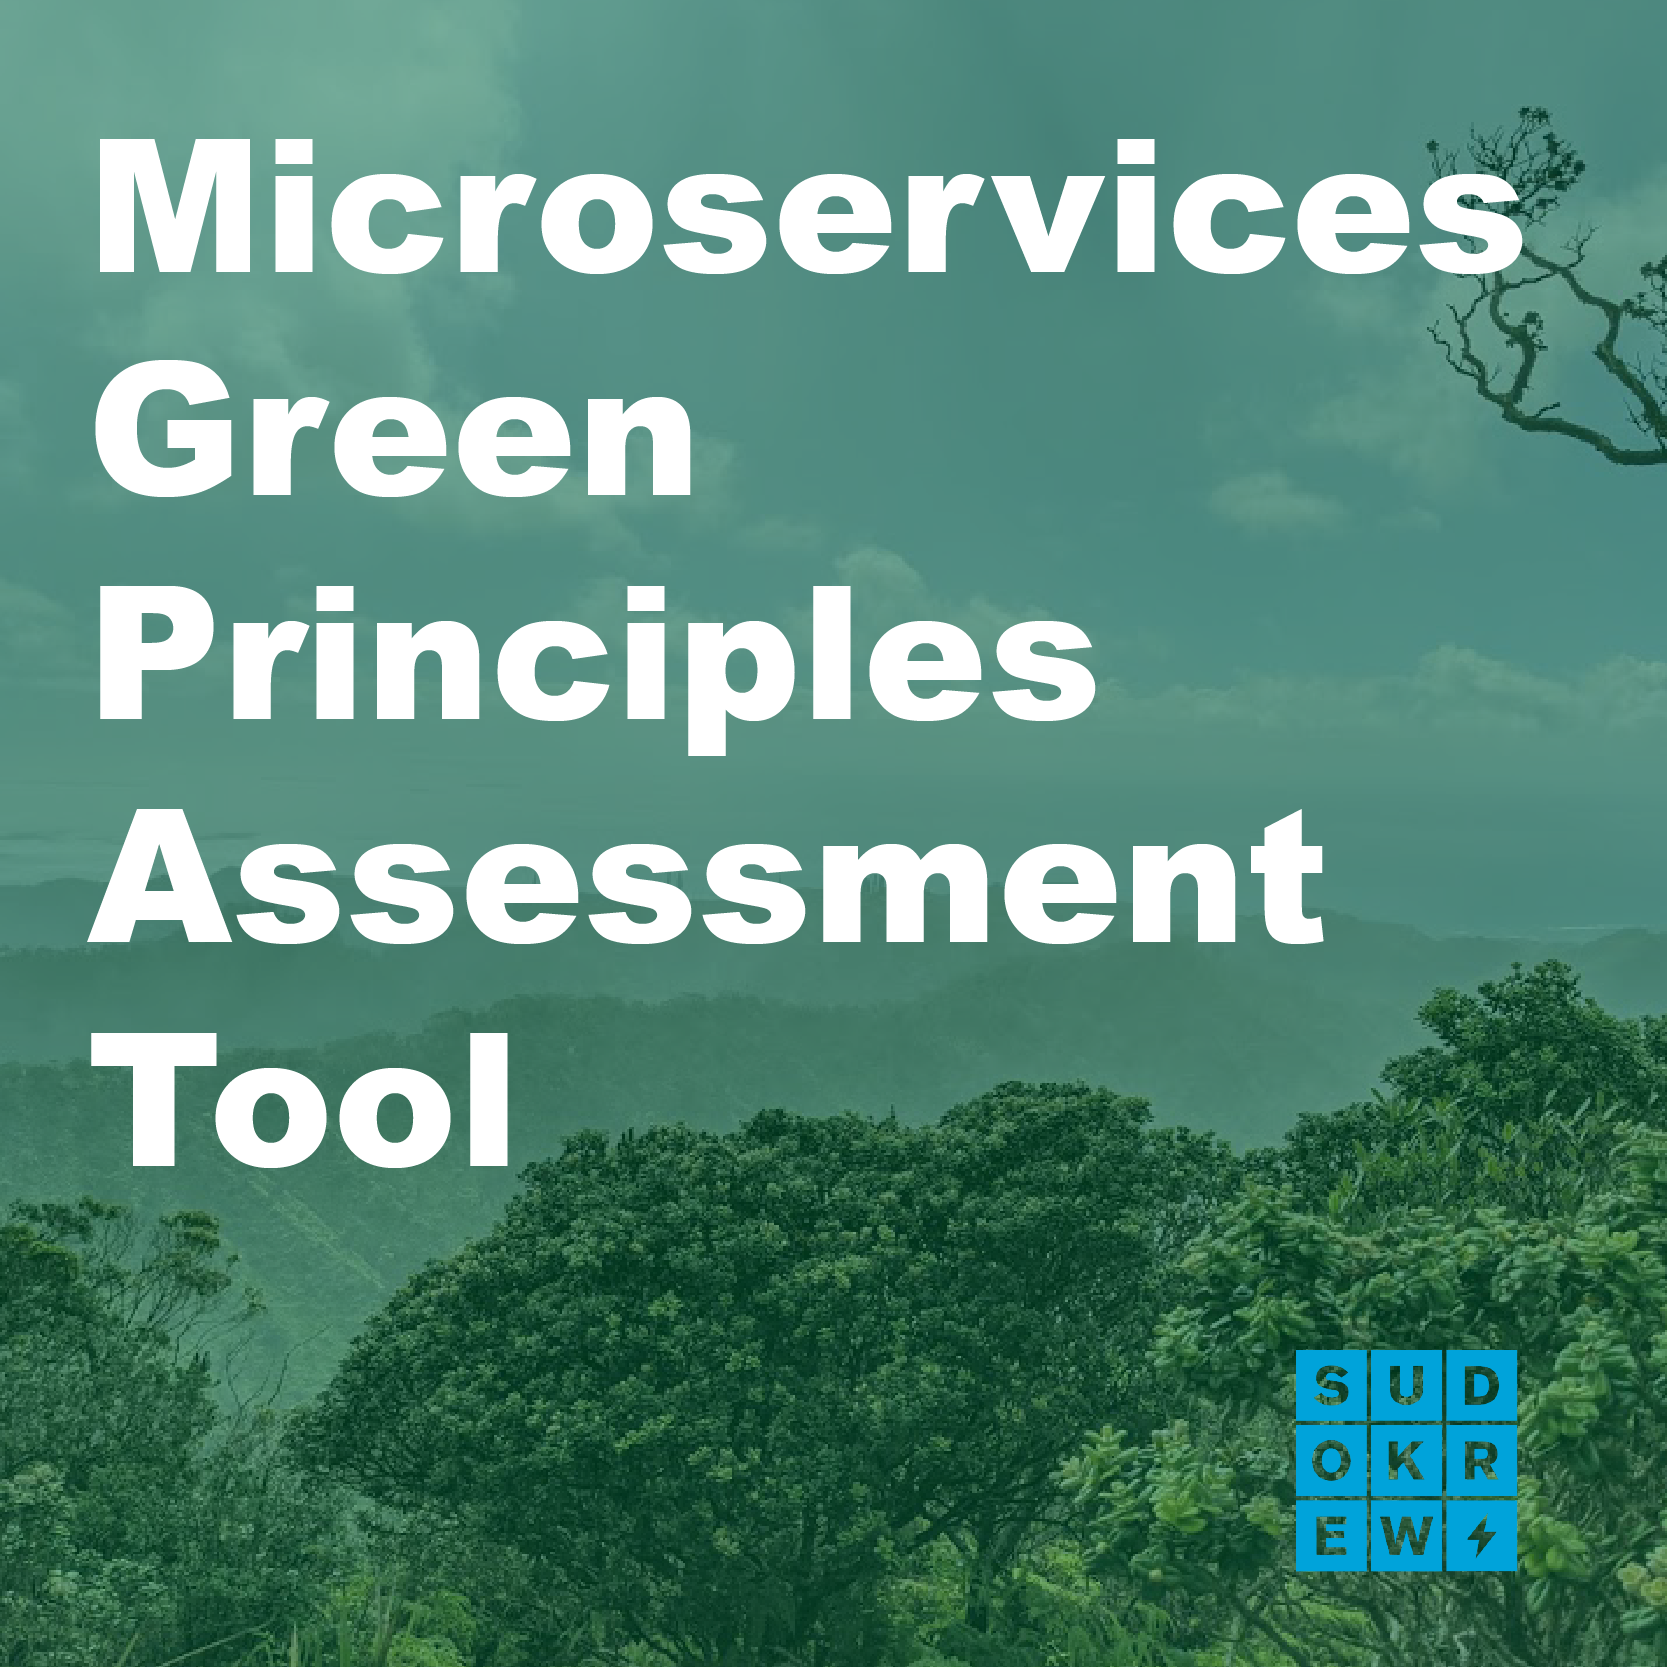 As a dev shop, our impact on the planet can sometimes feel invisible as we work from home firing up servers thousands of miles away. For this year's Earth Day, we built a simple assessment tool to improve our engineering practice.